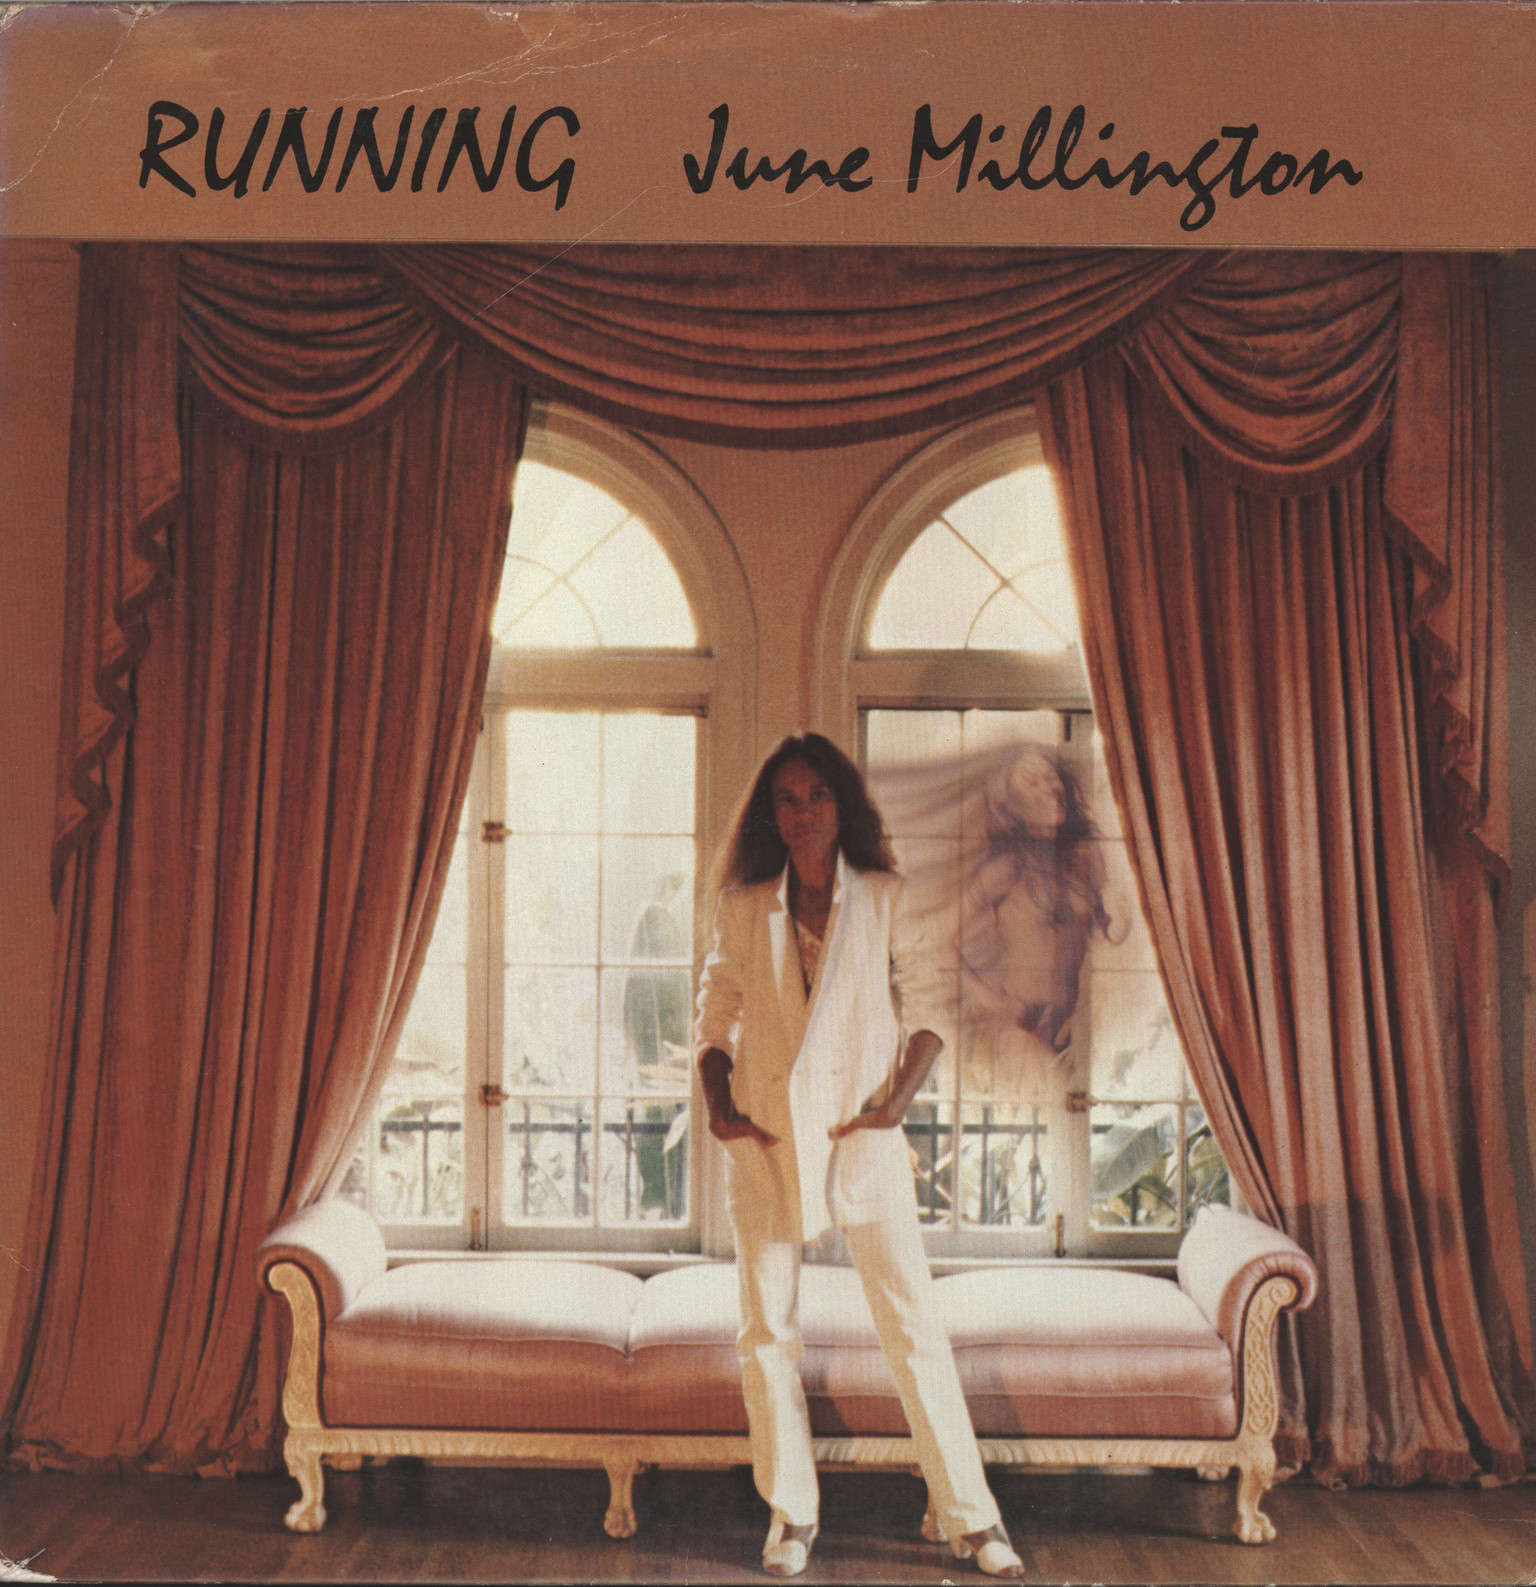 June Millington: Running, LP (Vinyl)